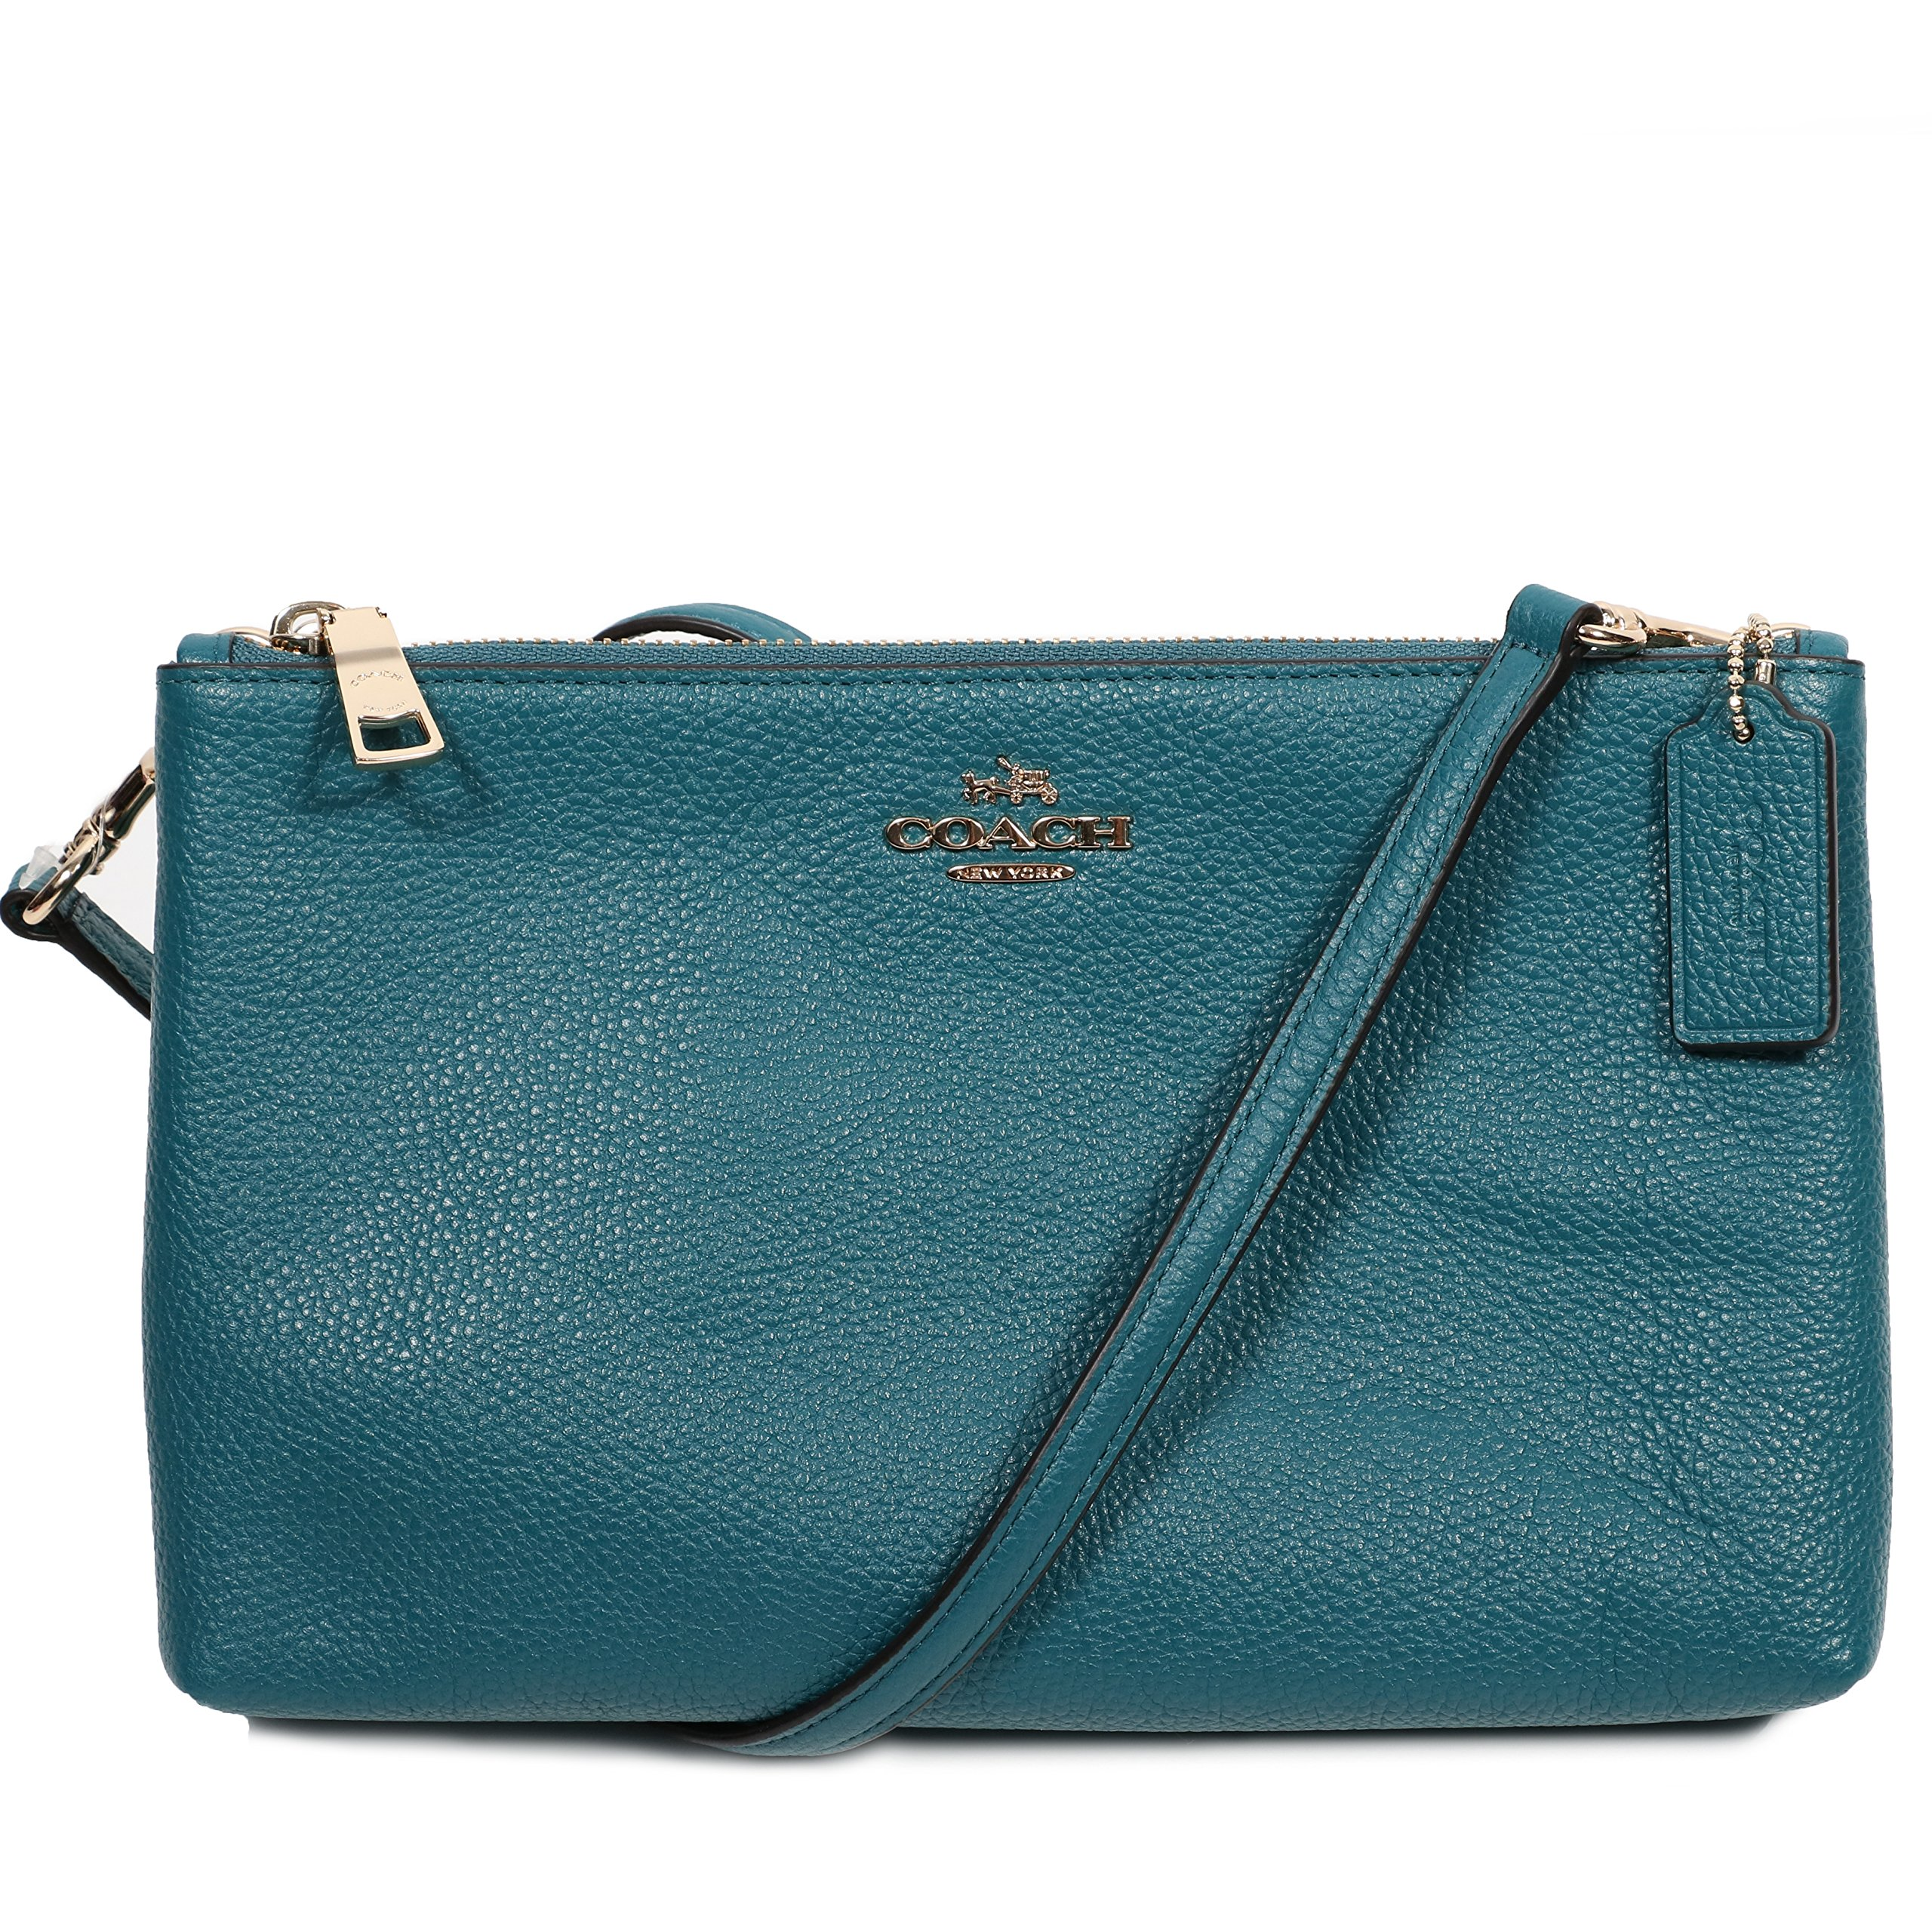 Coach Women's Lilac Pebble Leather Lyla Double Zip Crossbody Bag, Style F38273, Dark Teal by Coach